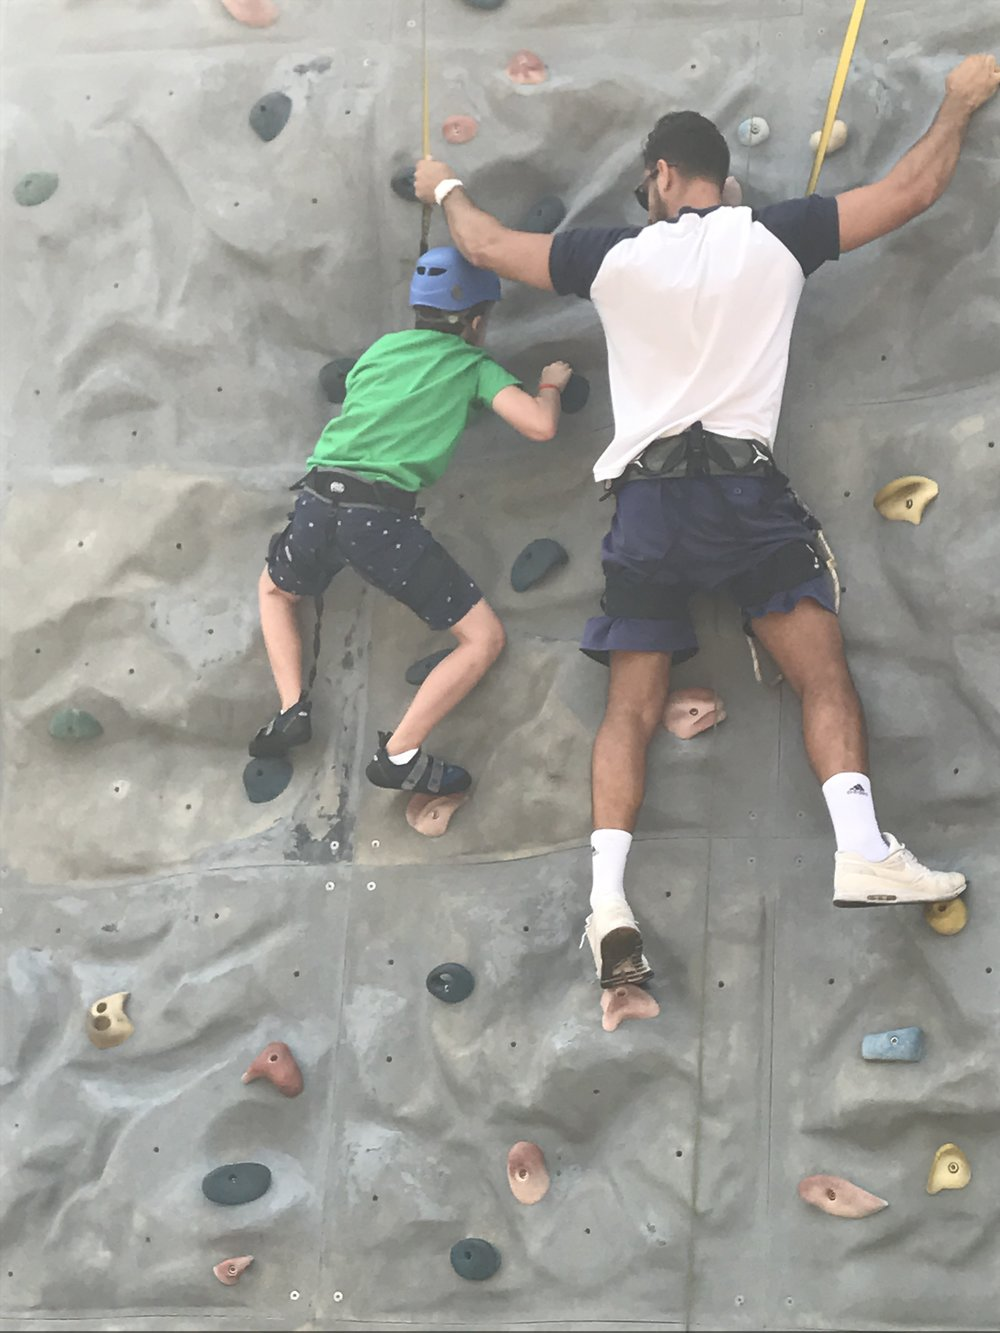 Stuck on the rock wall